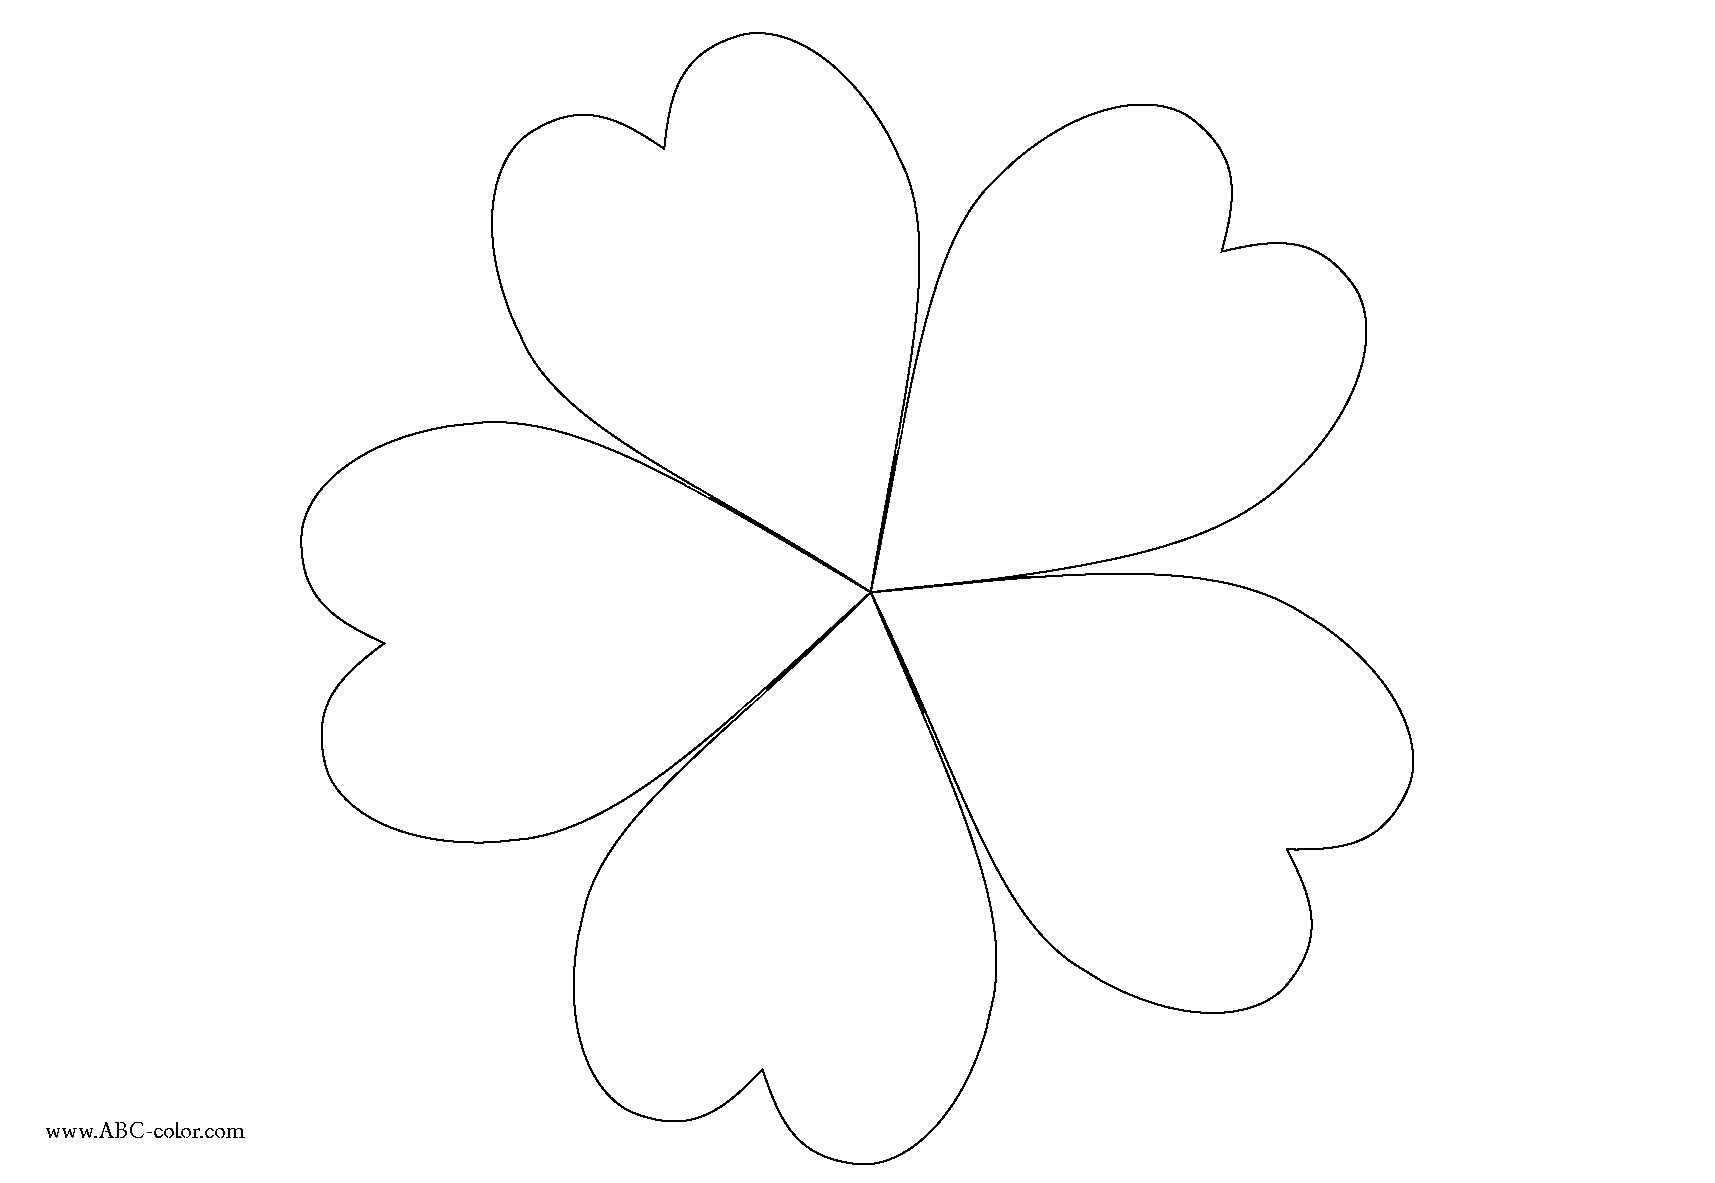 Flower petal drawing at free for for Flower template 5 petals